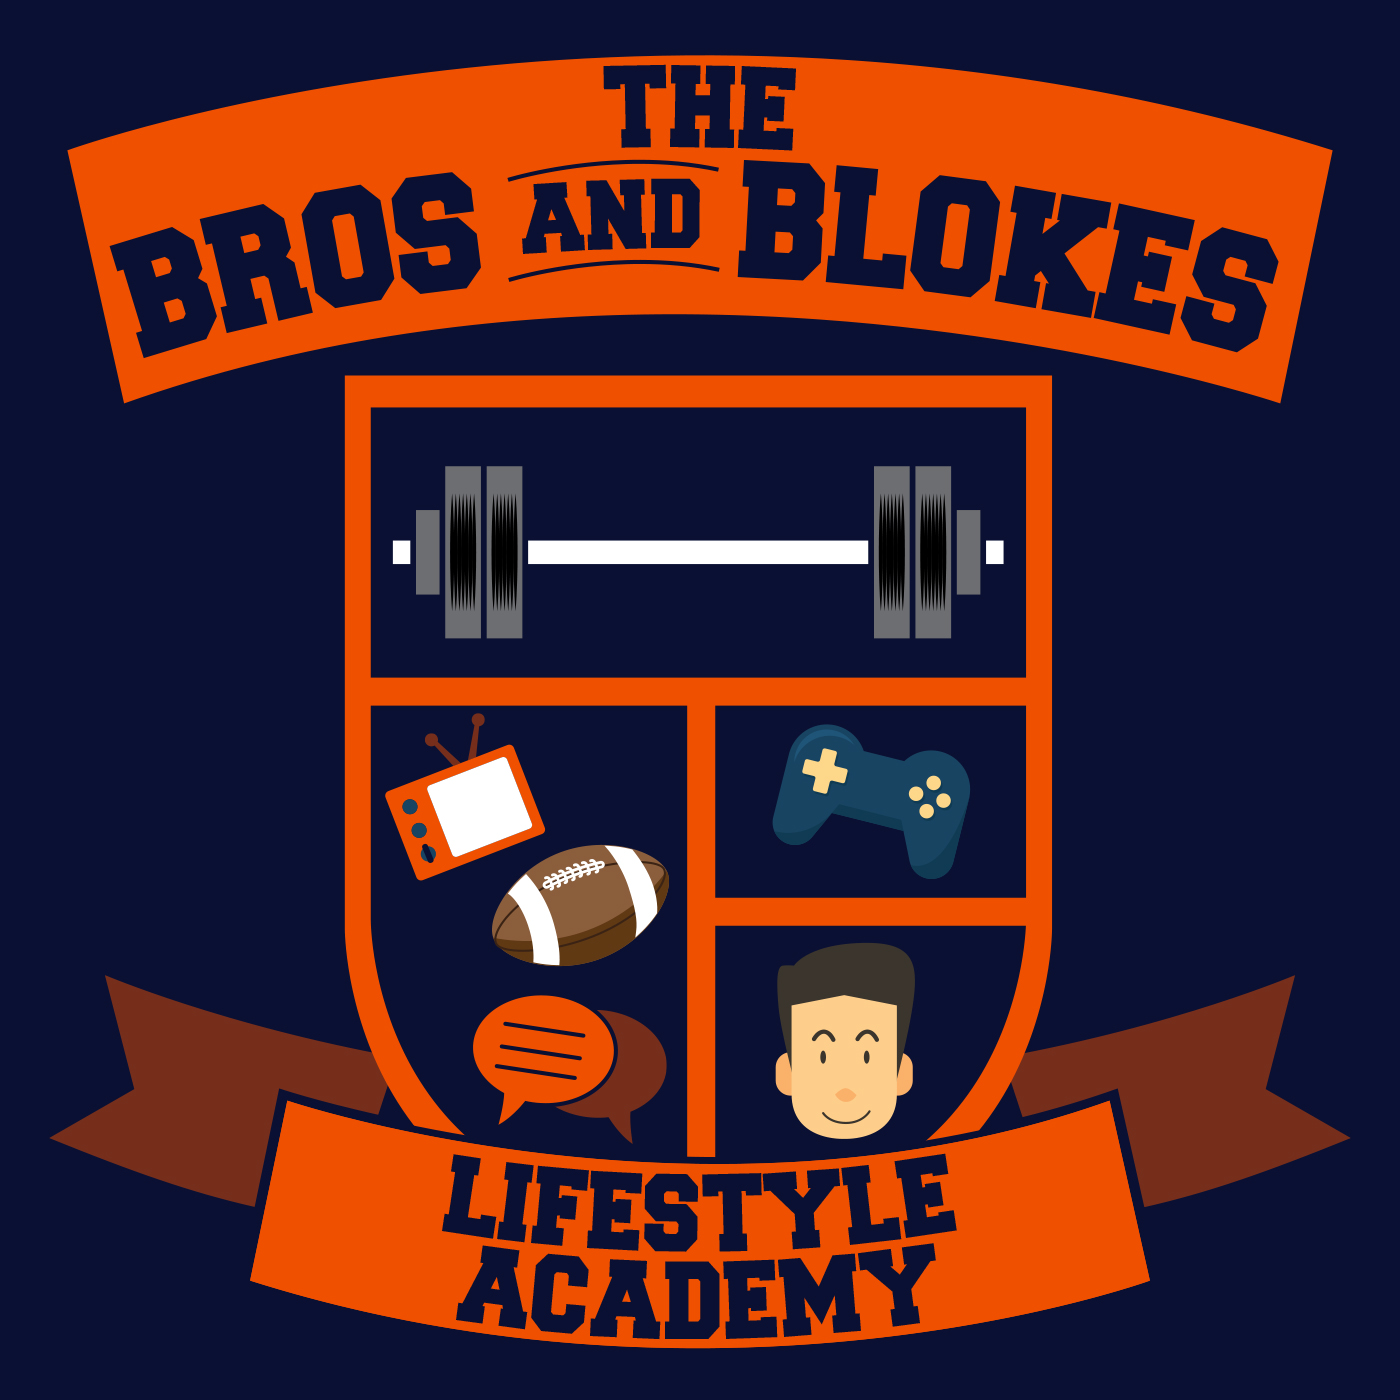 The Bros and Blokes Lifestyle Academy Logo